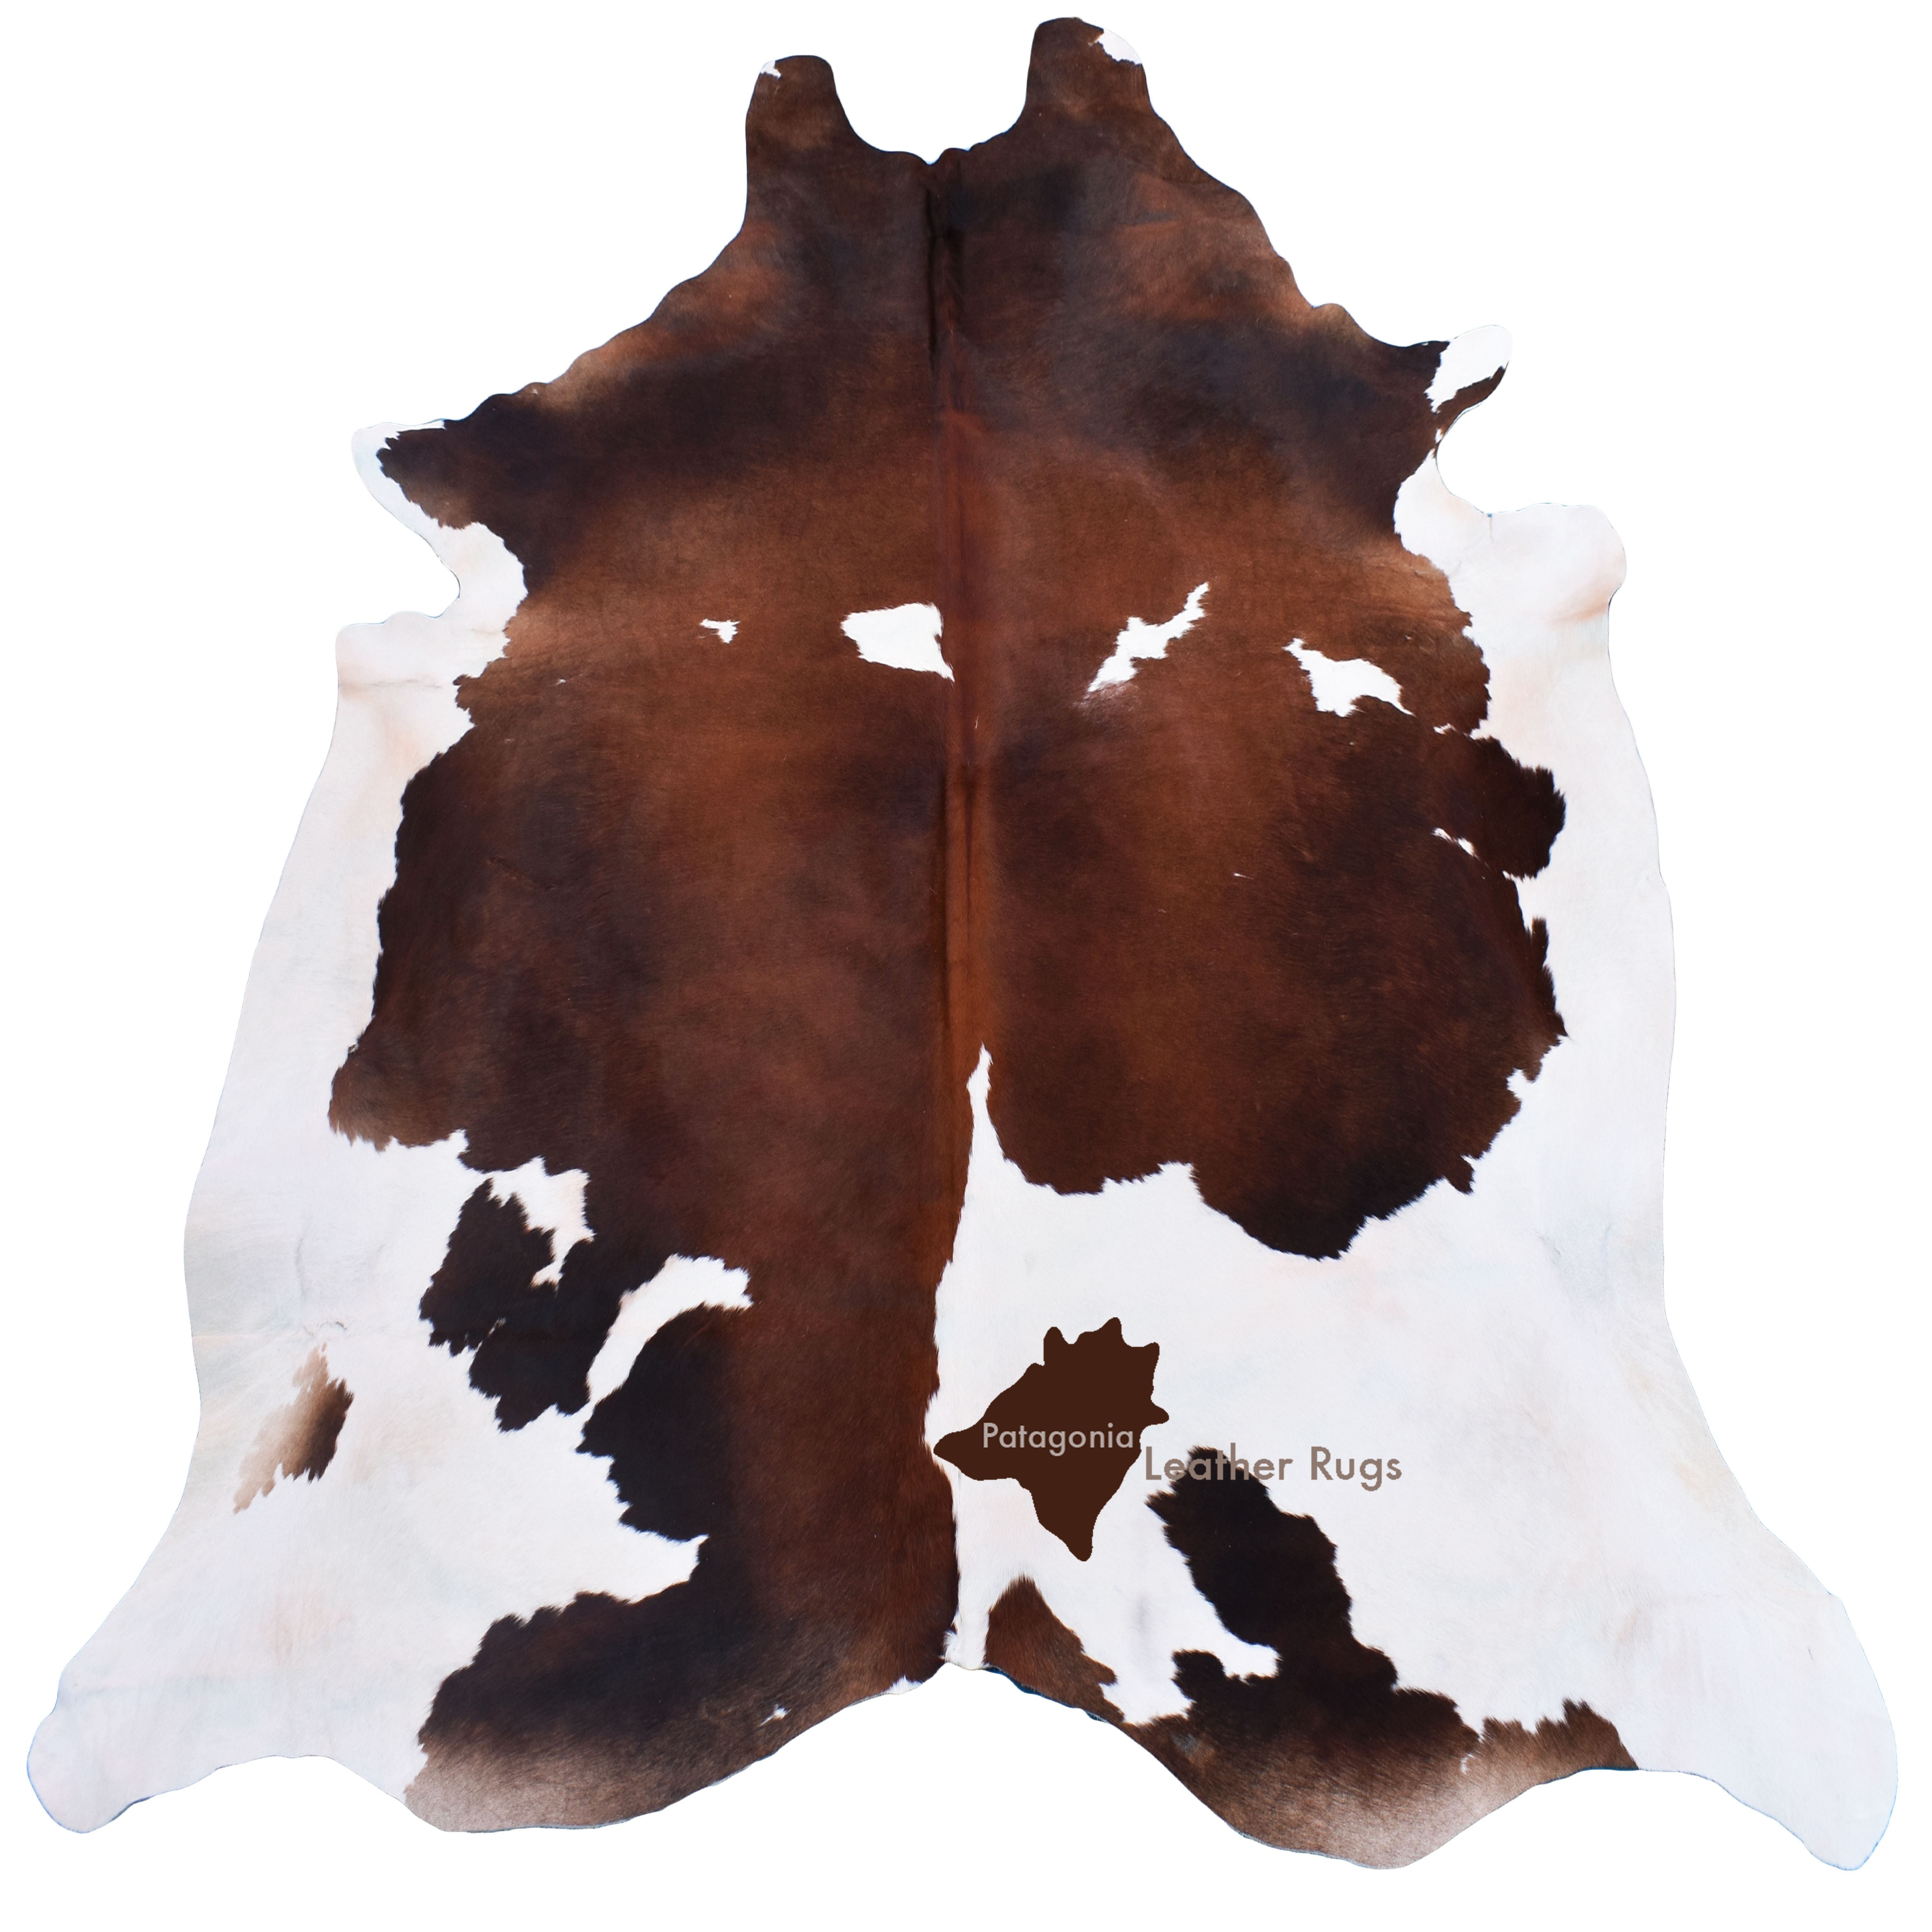 Pin von Patagonia Leather Rugs auf Tappeti in pelle di mucca